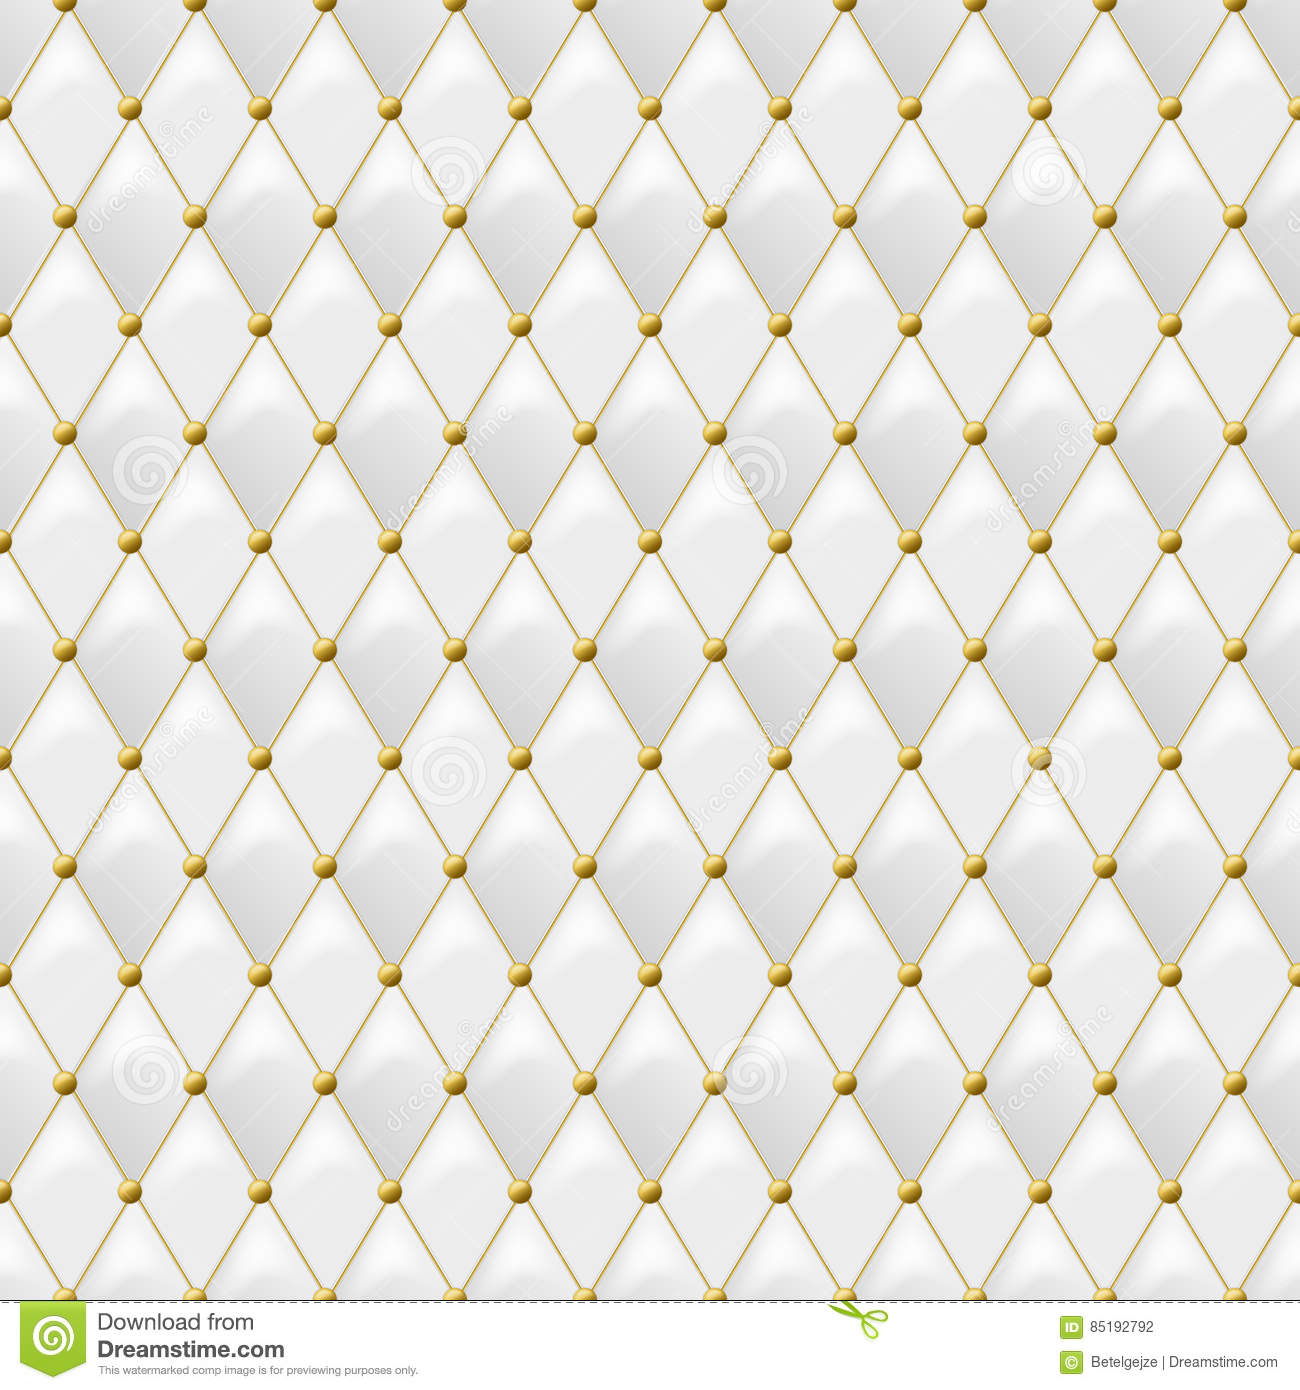 Seamless White Leather Texture With Gold Metal Details Vector Background